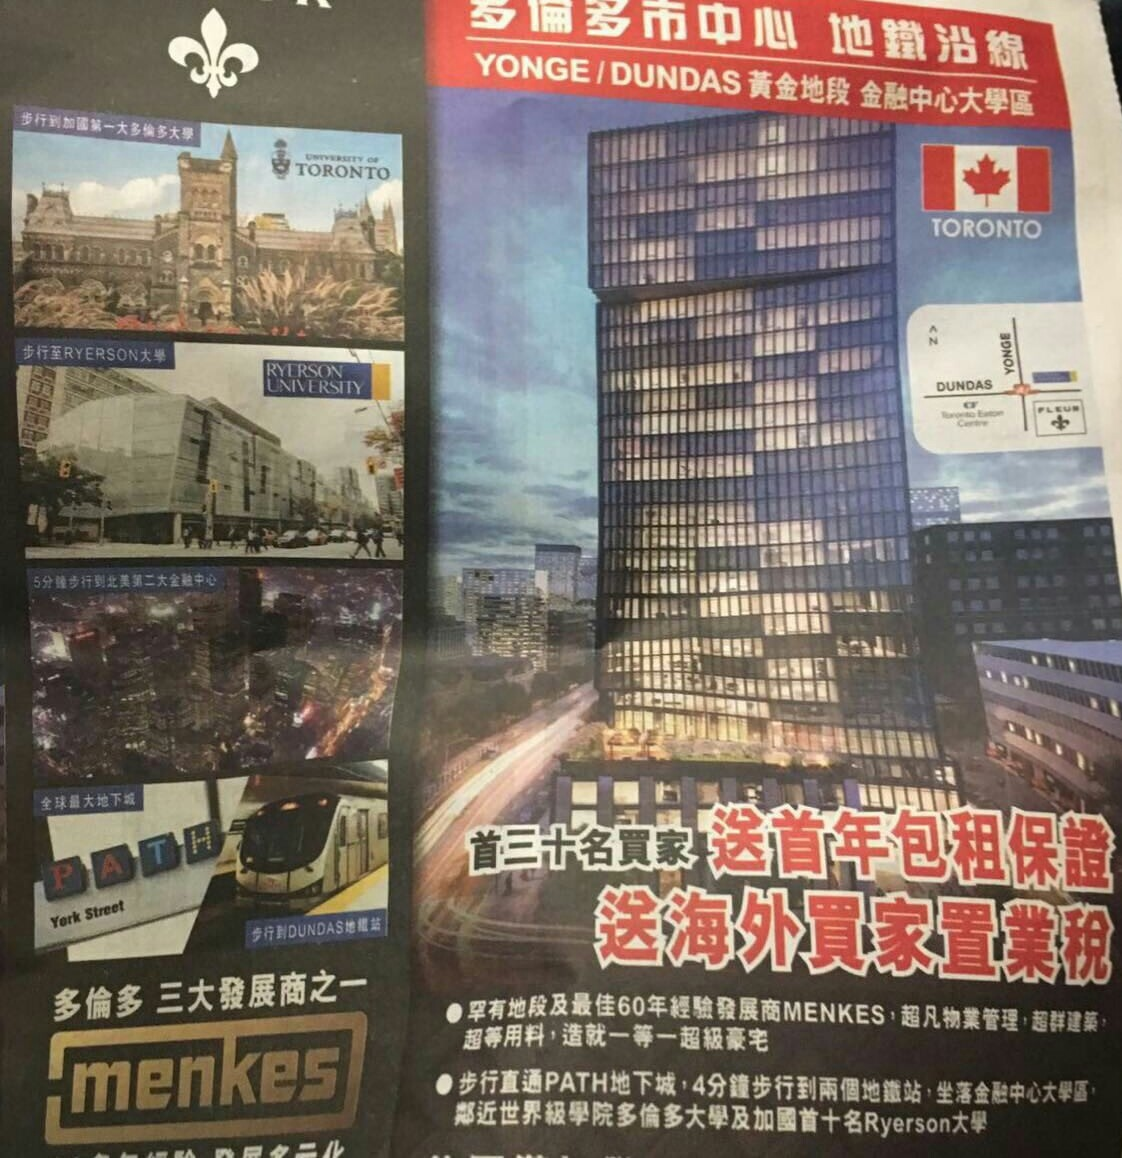 Hong Kong ad offers to cover foreign buyers' tax for Toronto